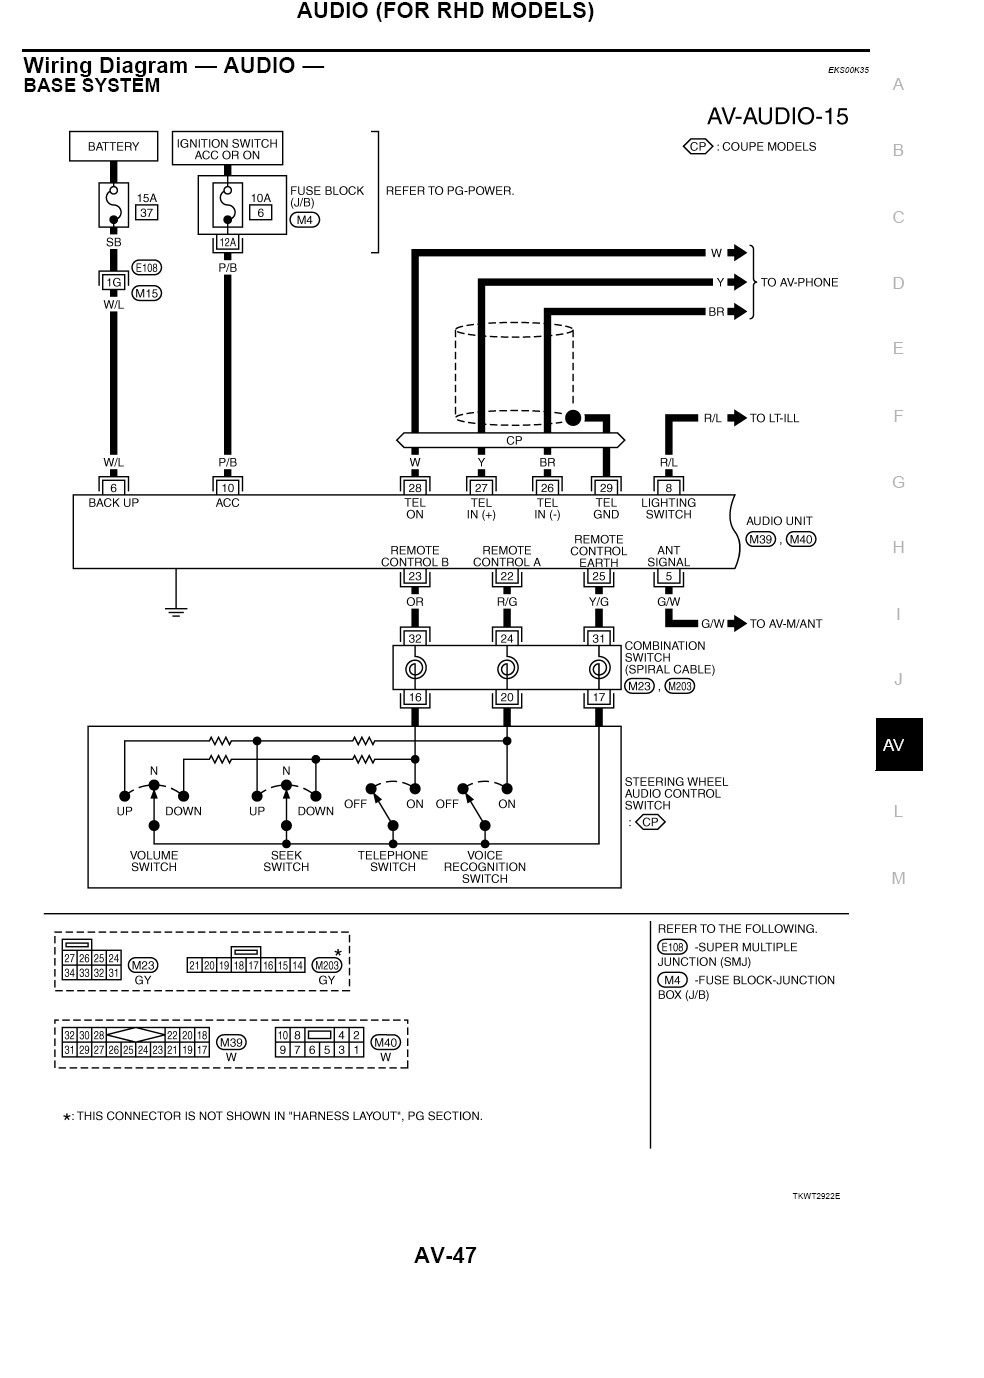 [DIAGRAM] 02 Nissan Frontier Wiring Diagram Audio FULL